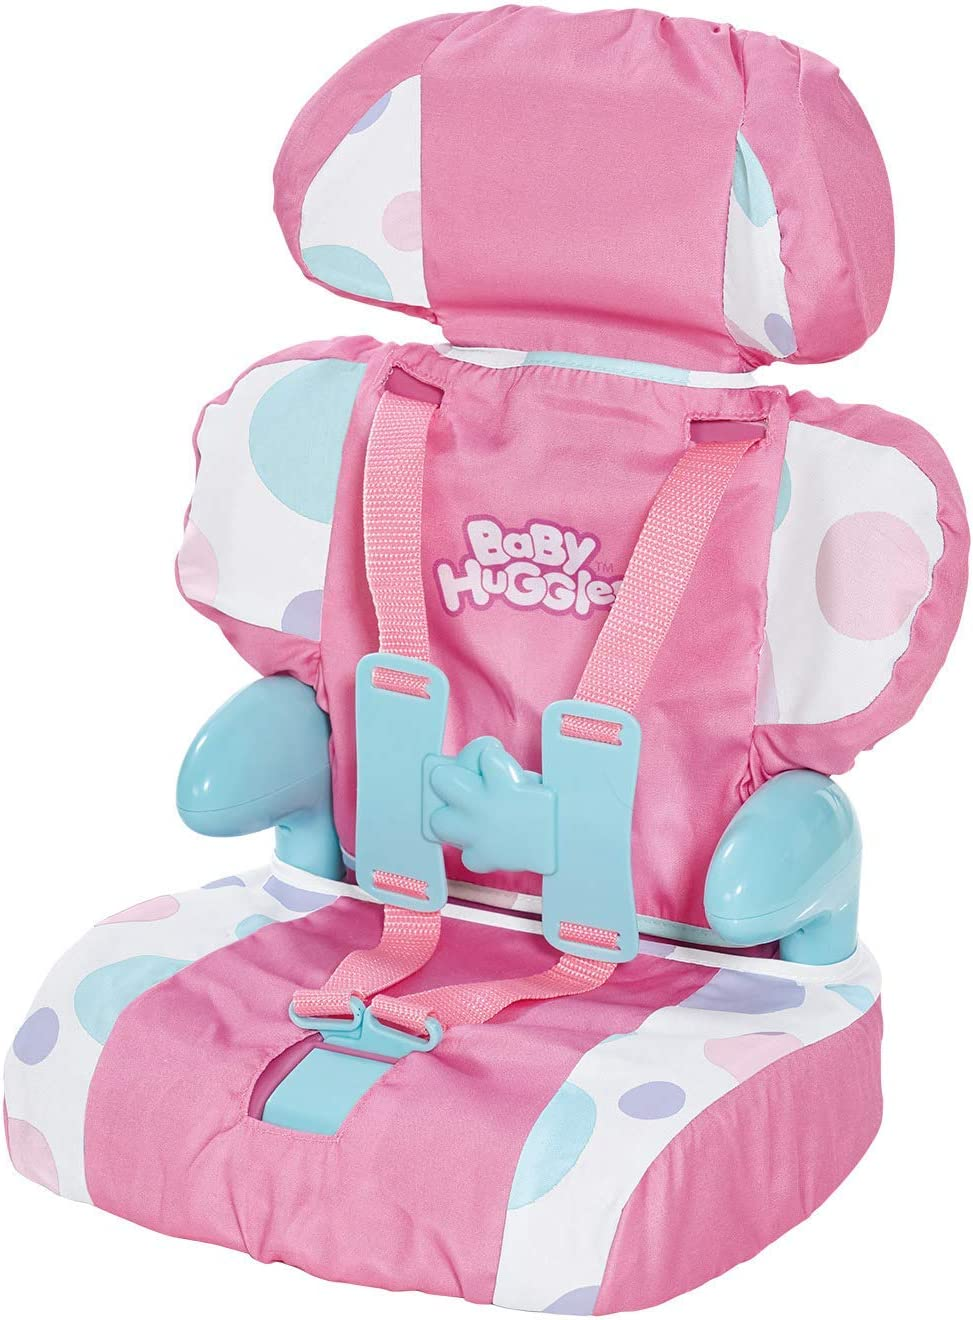 10 Best Baby Doll Car Seat